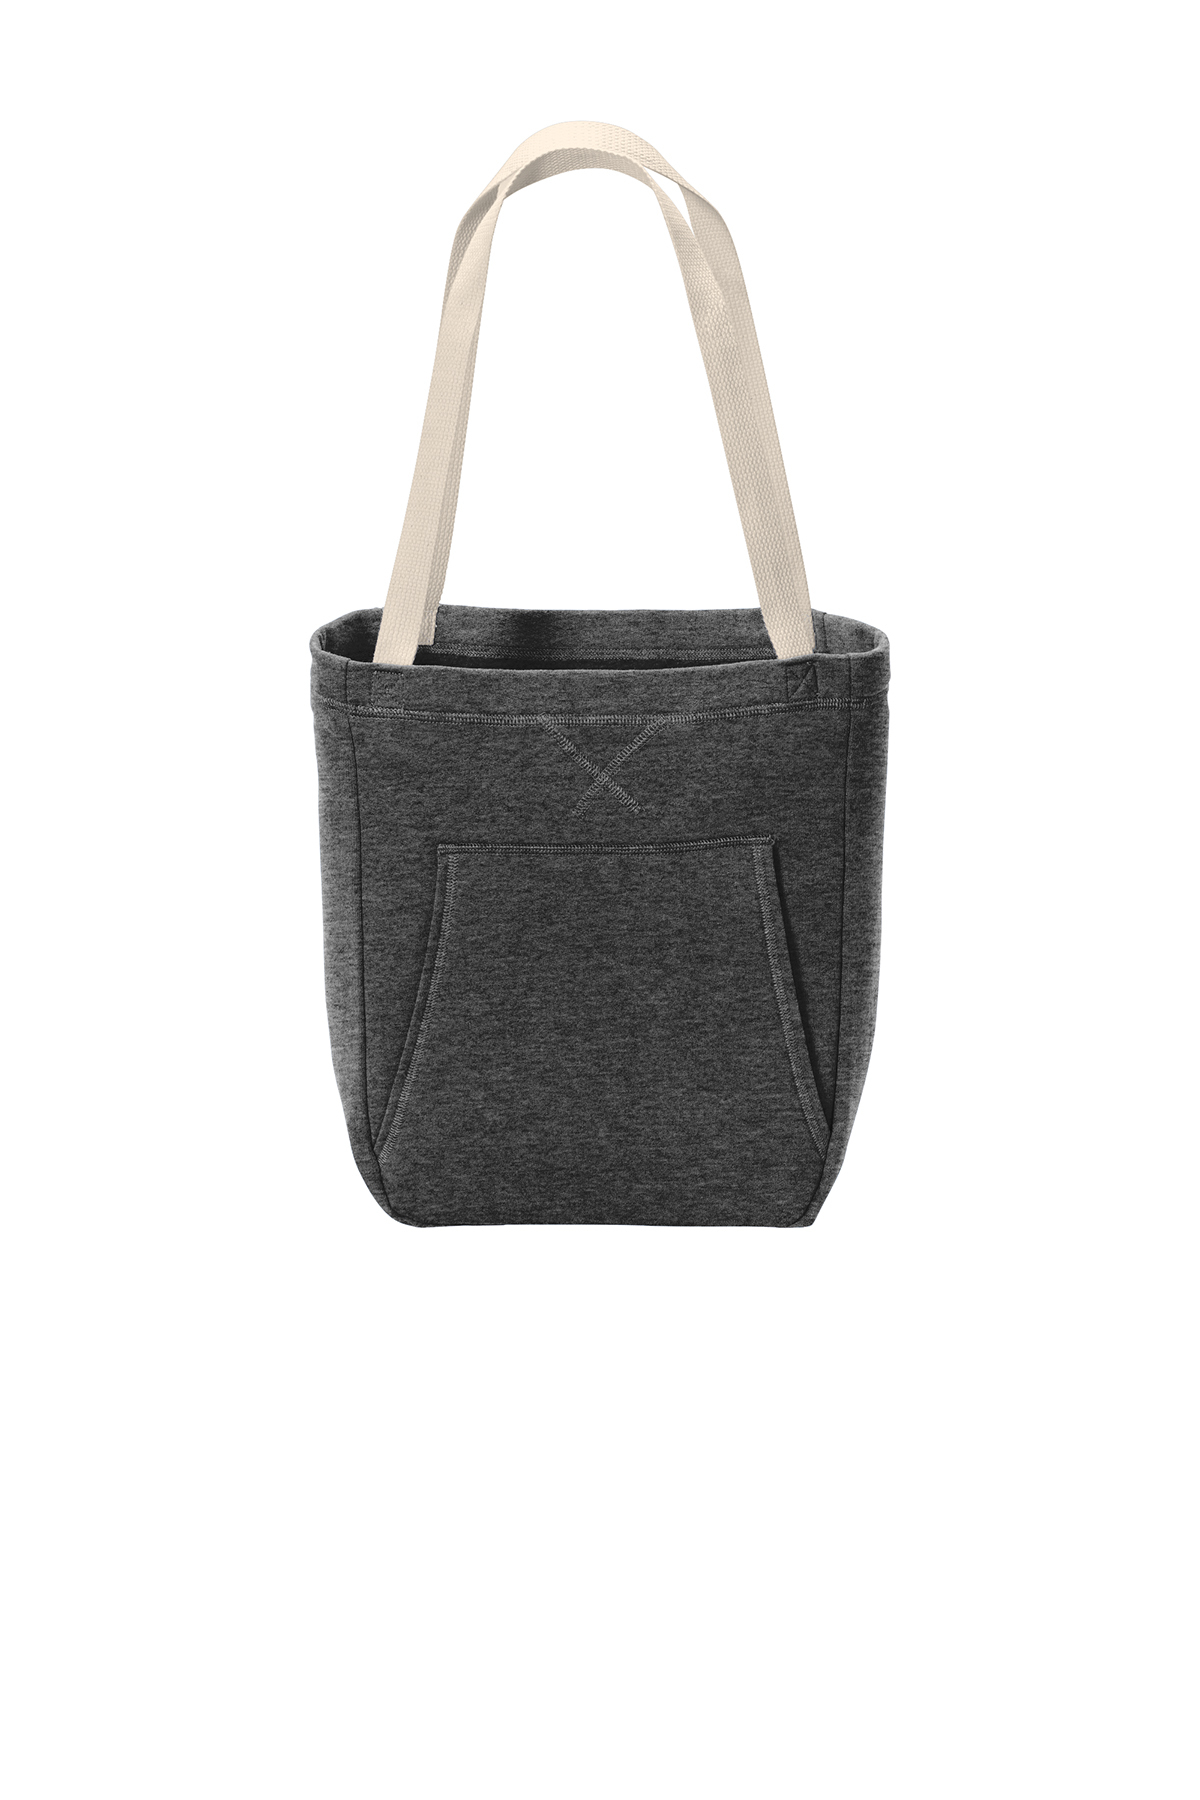 Fleece Sweatshirt Tote - BTO1043